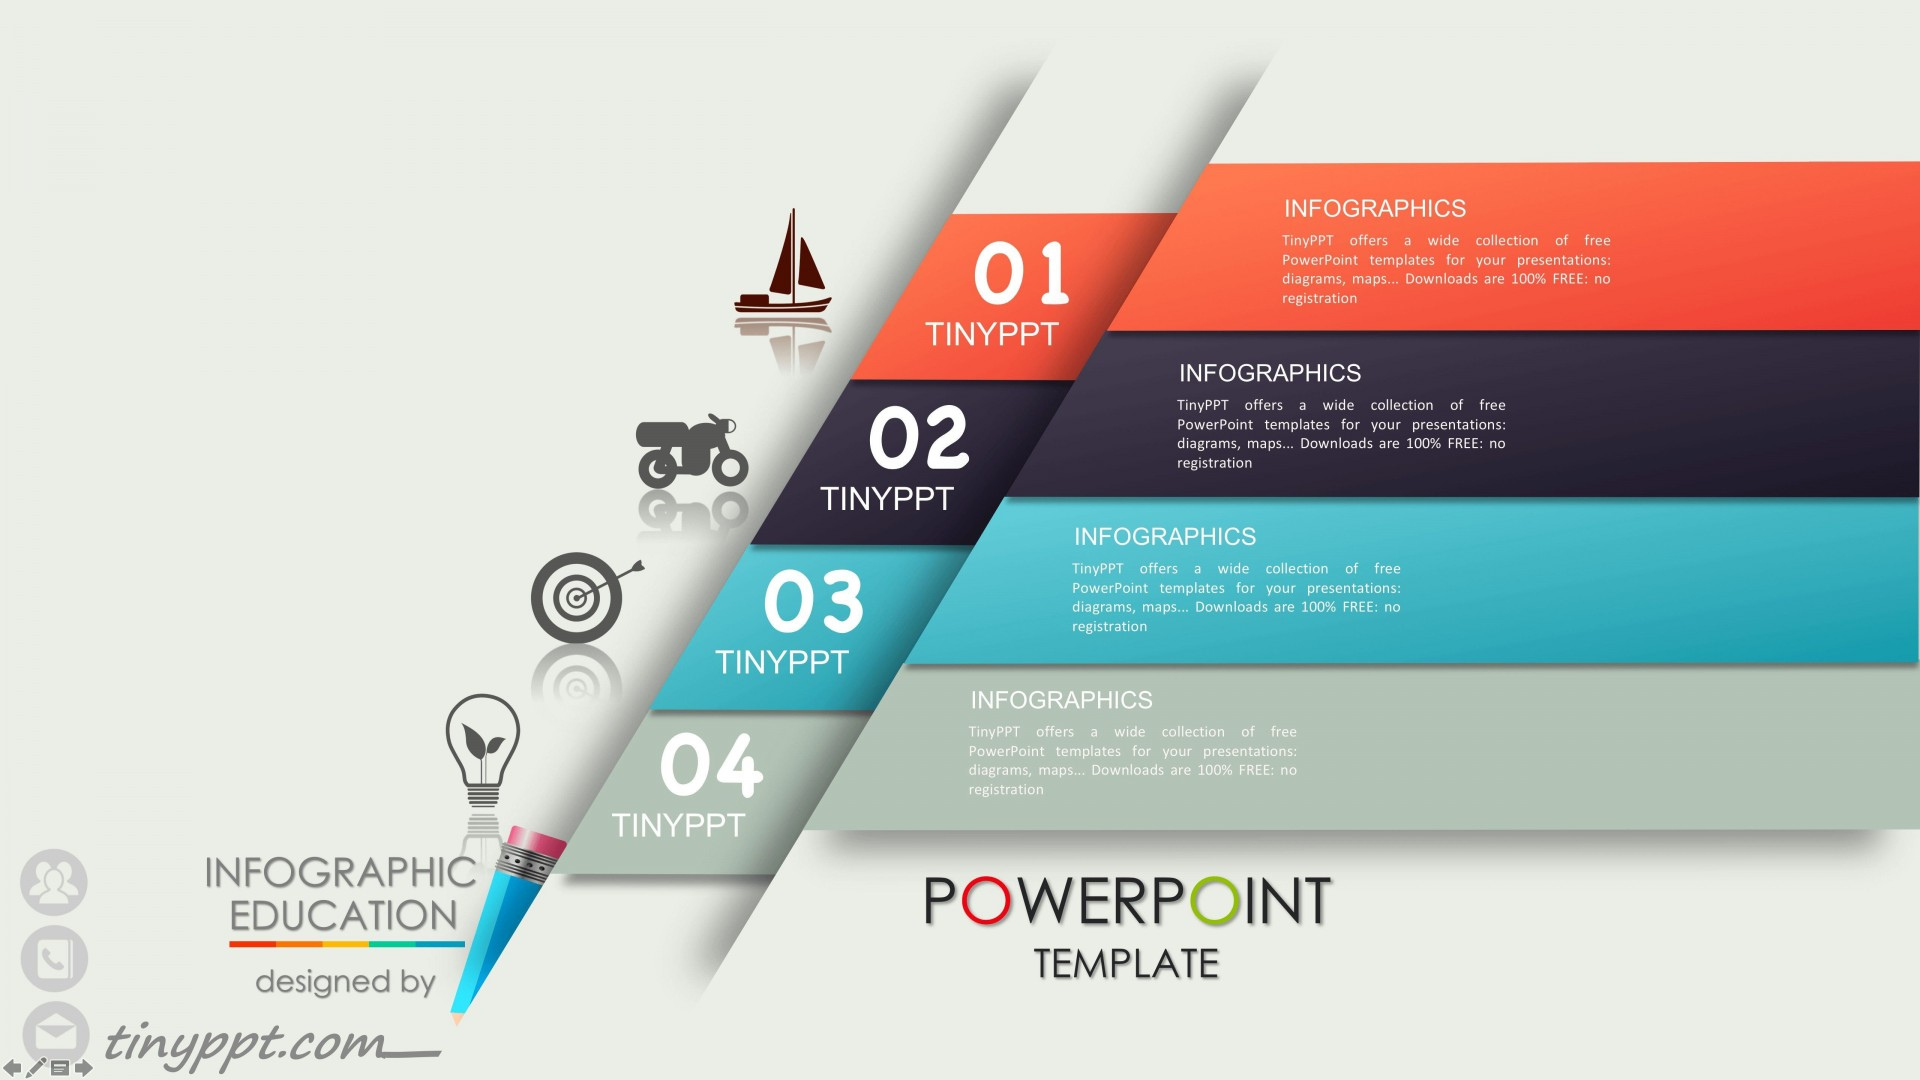 001 Phenomenal Free Download Powerpoint Template Photo  Templates Medical Theme Presentation 20181920